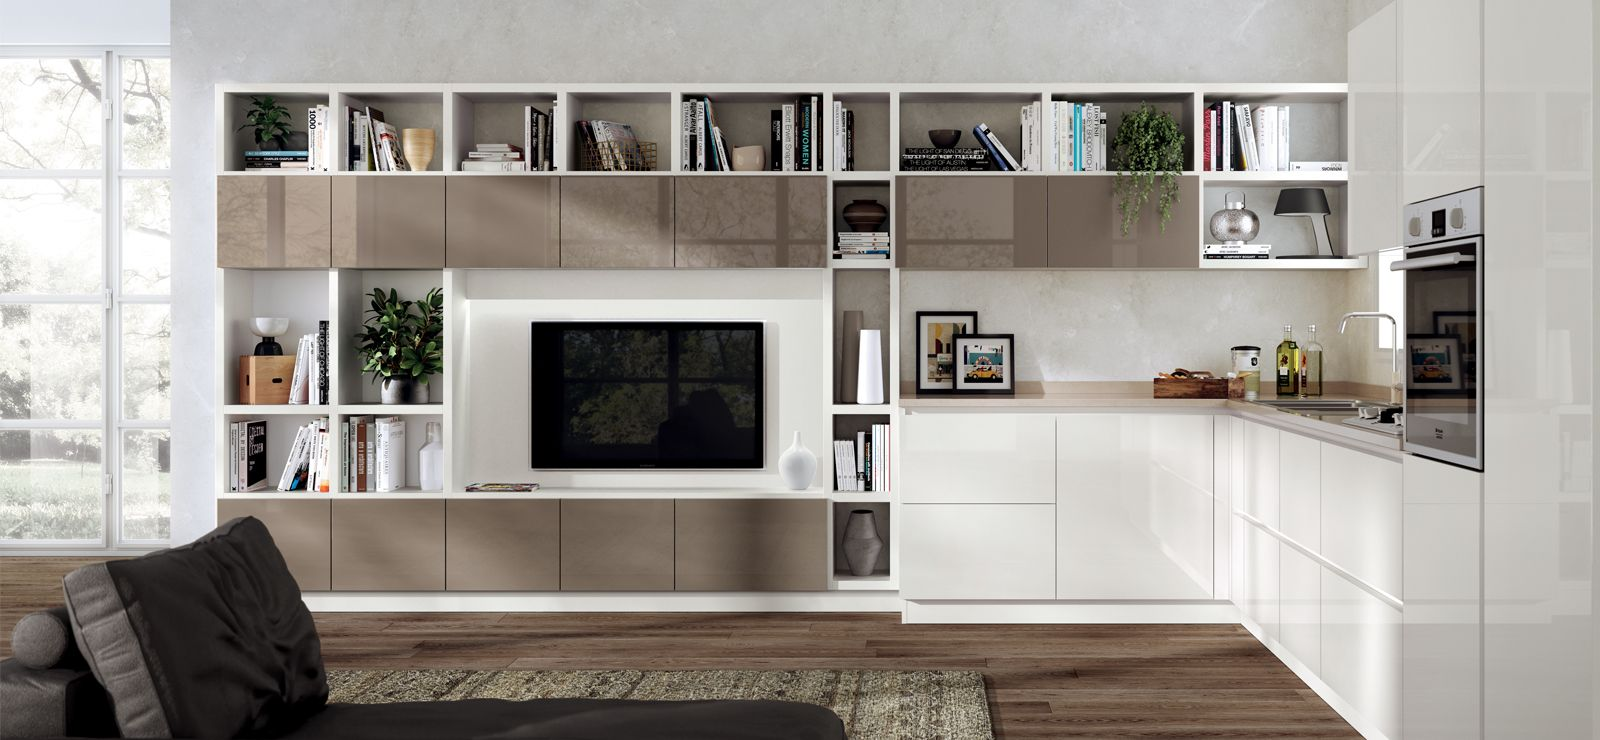 Living Scavolini | Interior Decoration | Pinterest | Piccole cucine ...